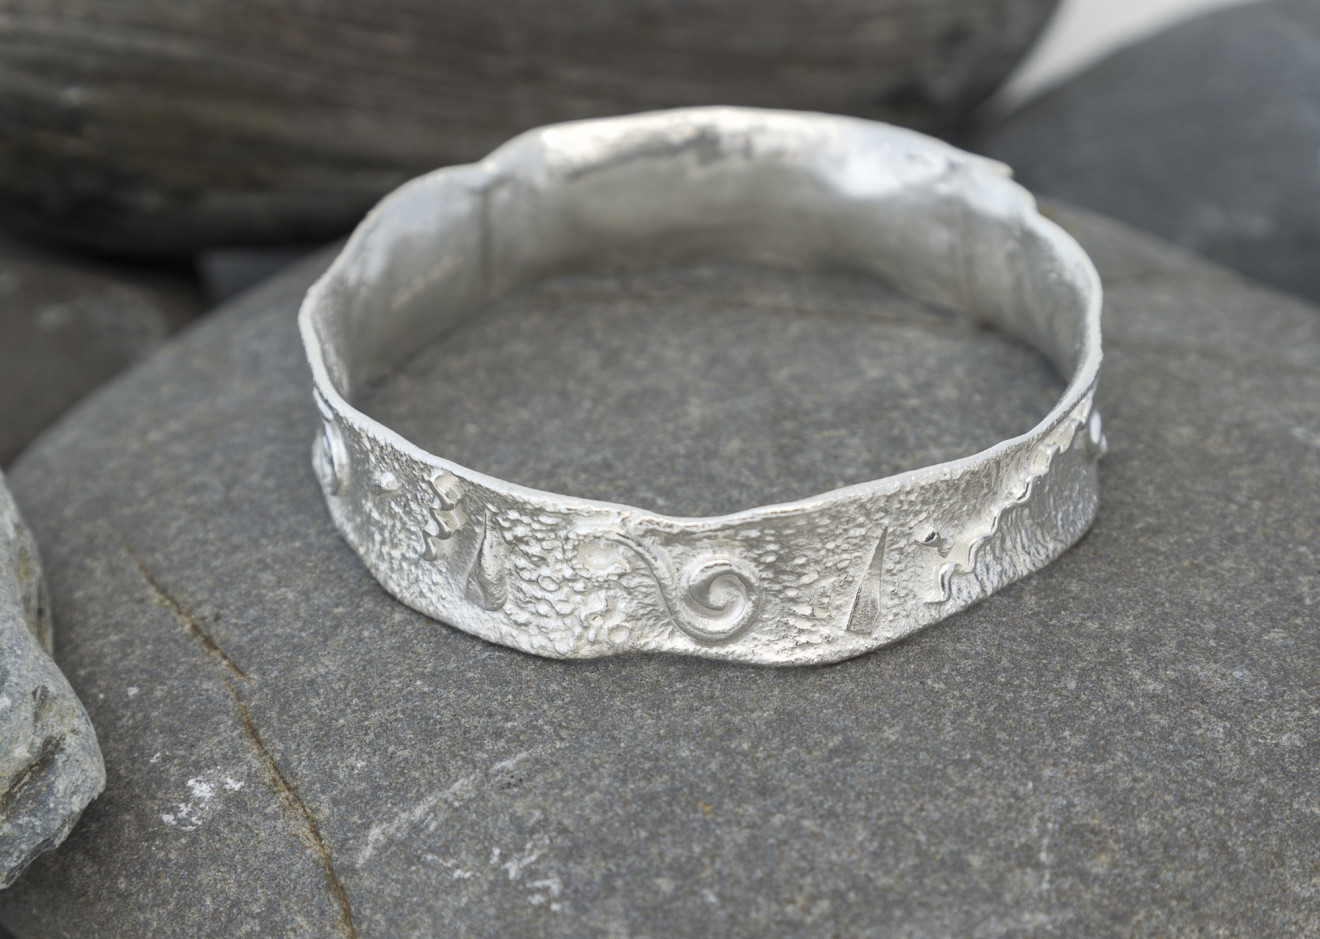 Marsha Drew, Textured Silver Bangle